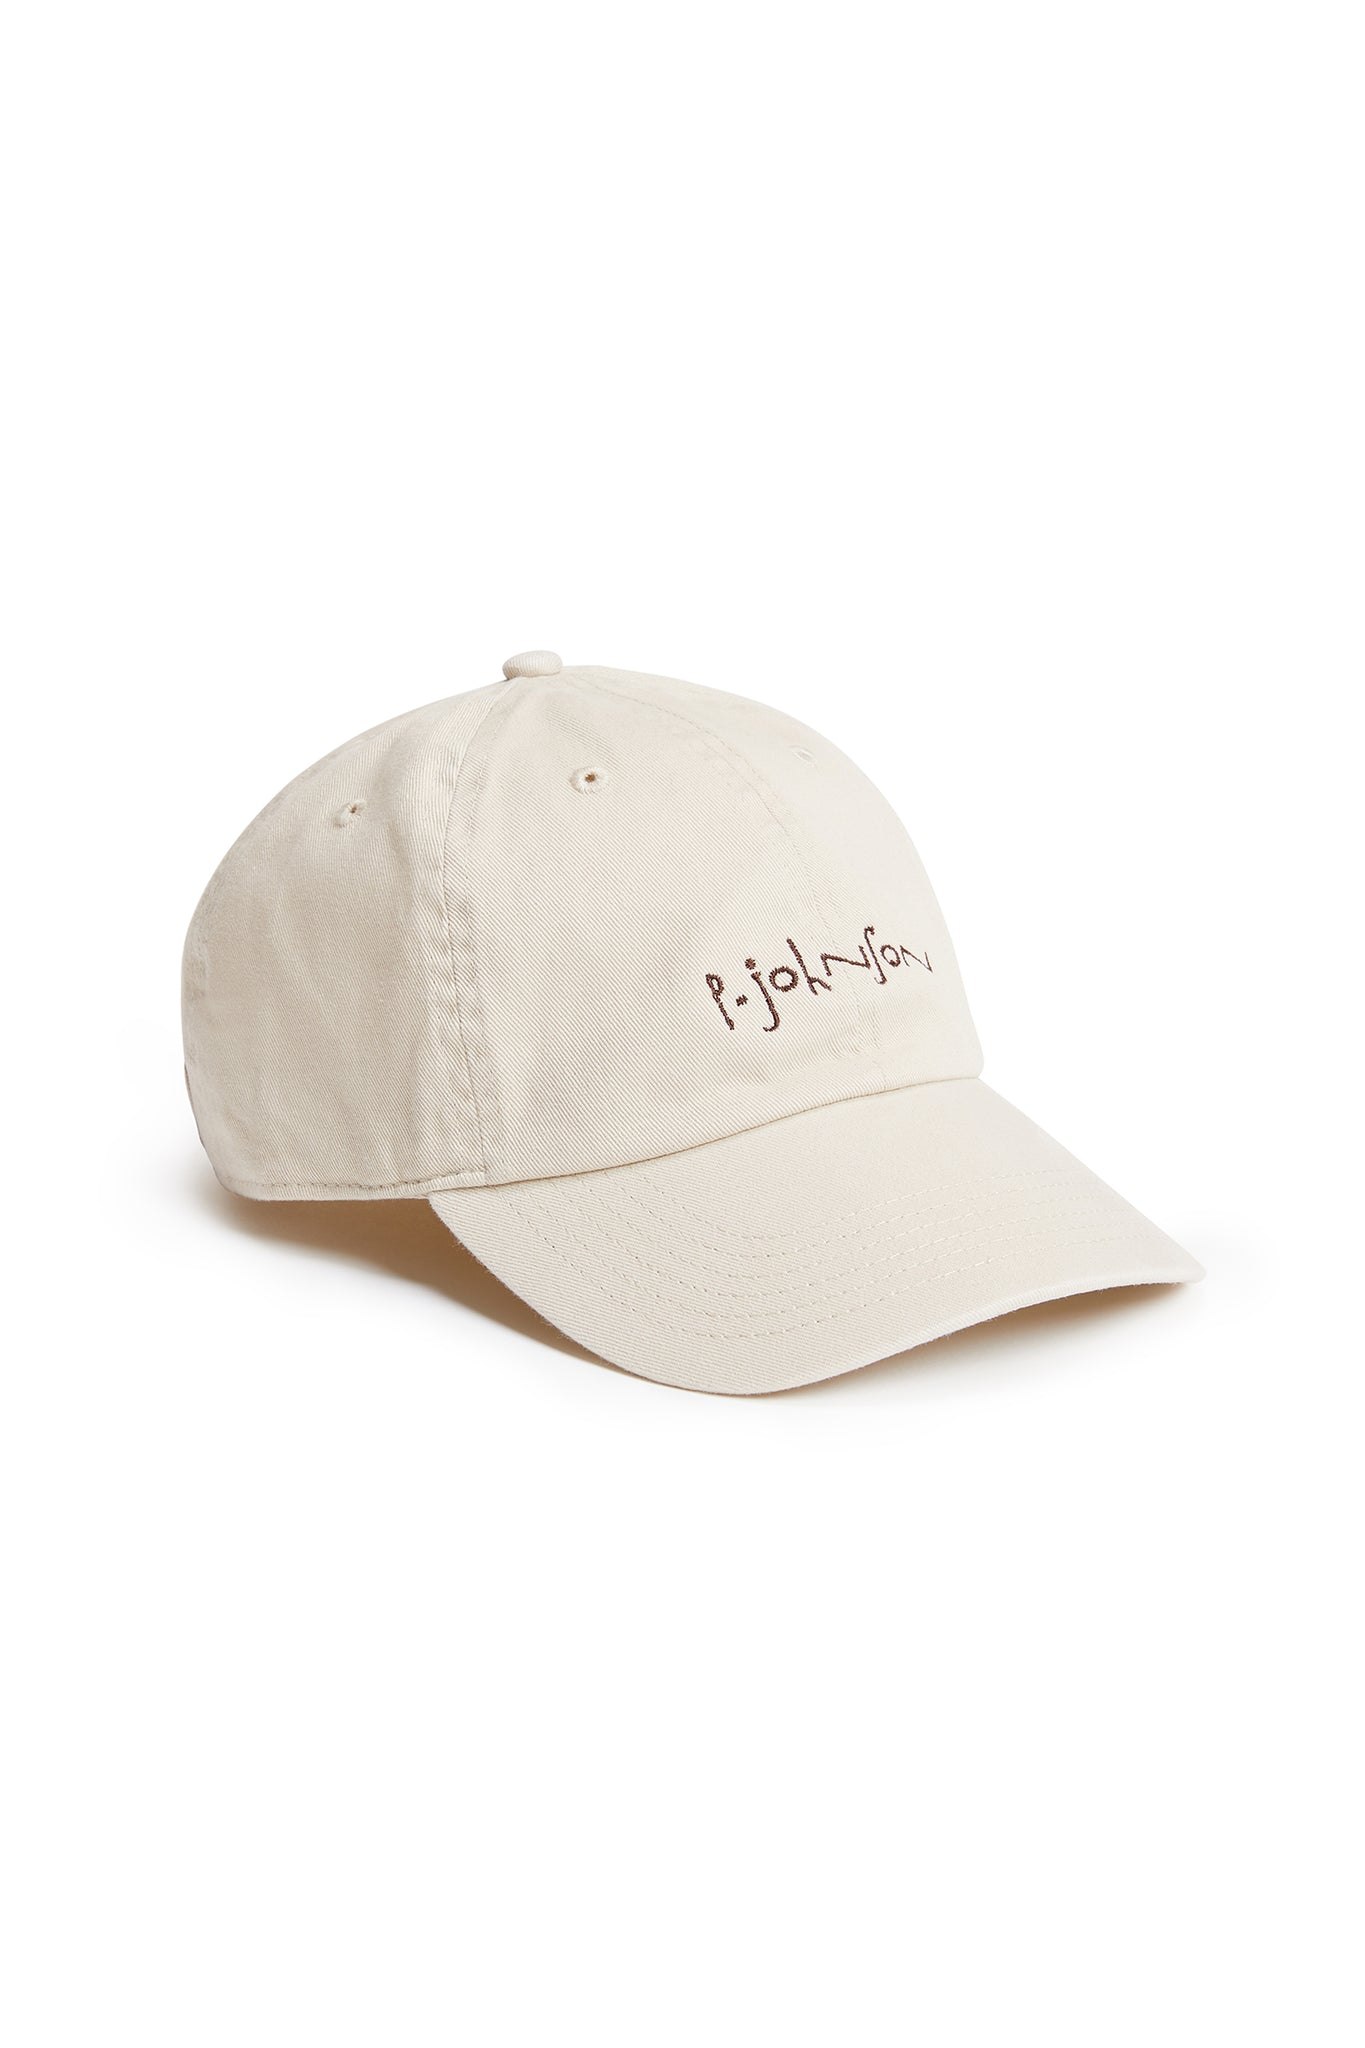 Beige Dad Cap with Brown logo